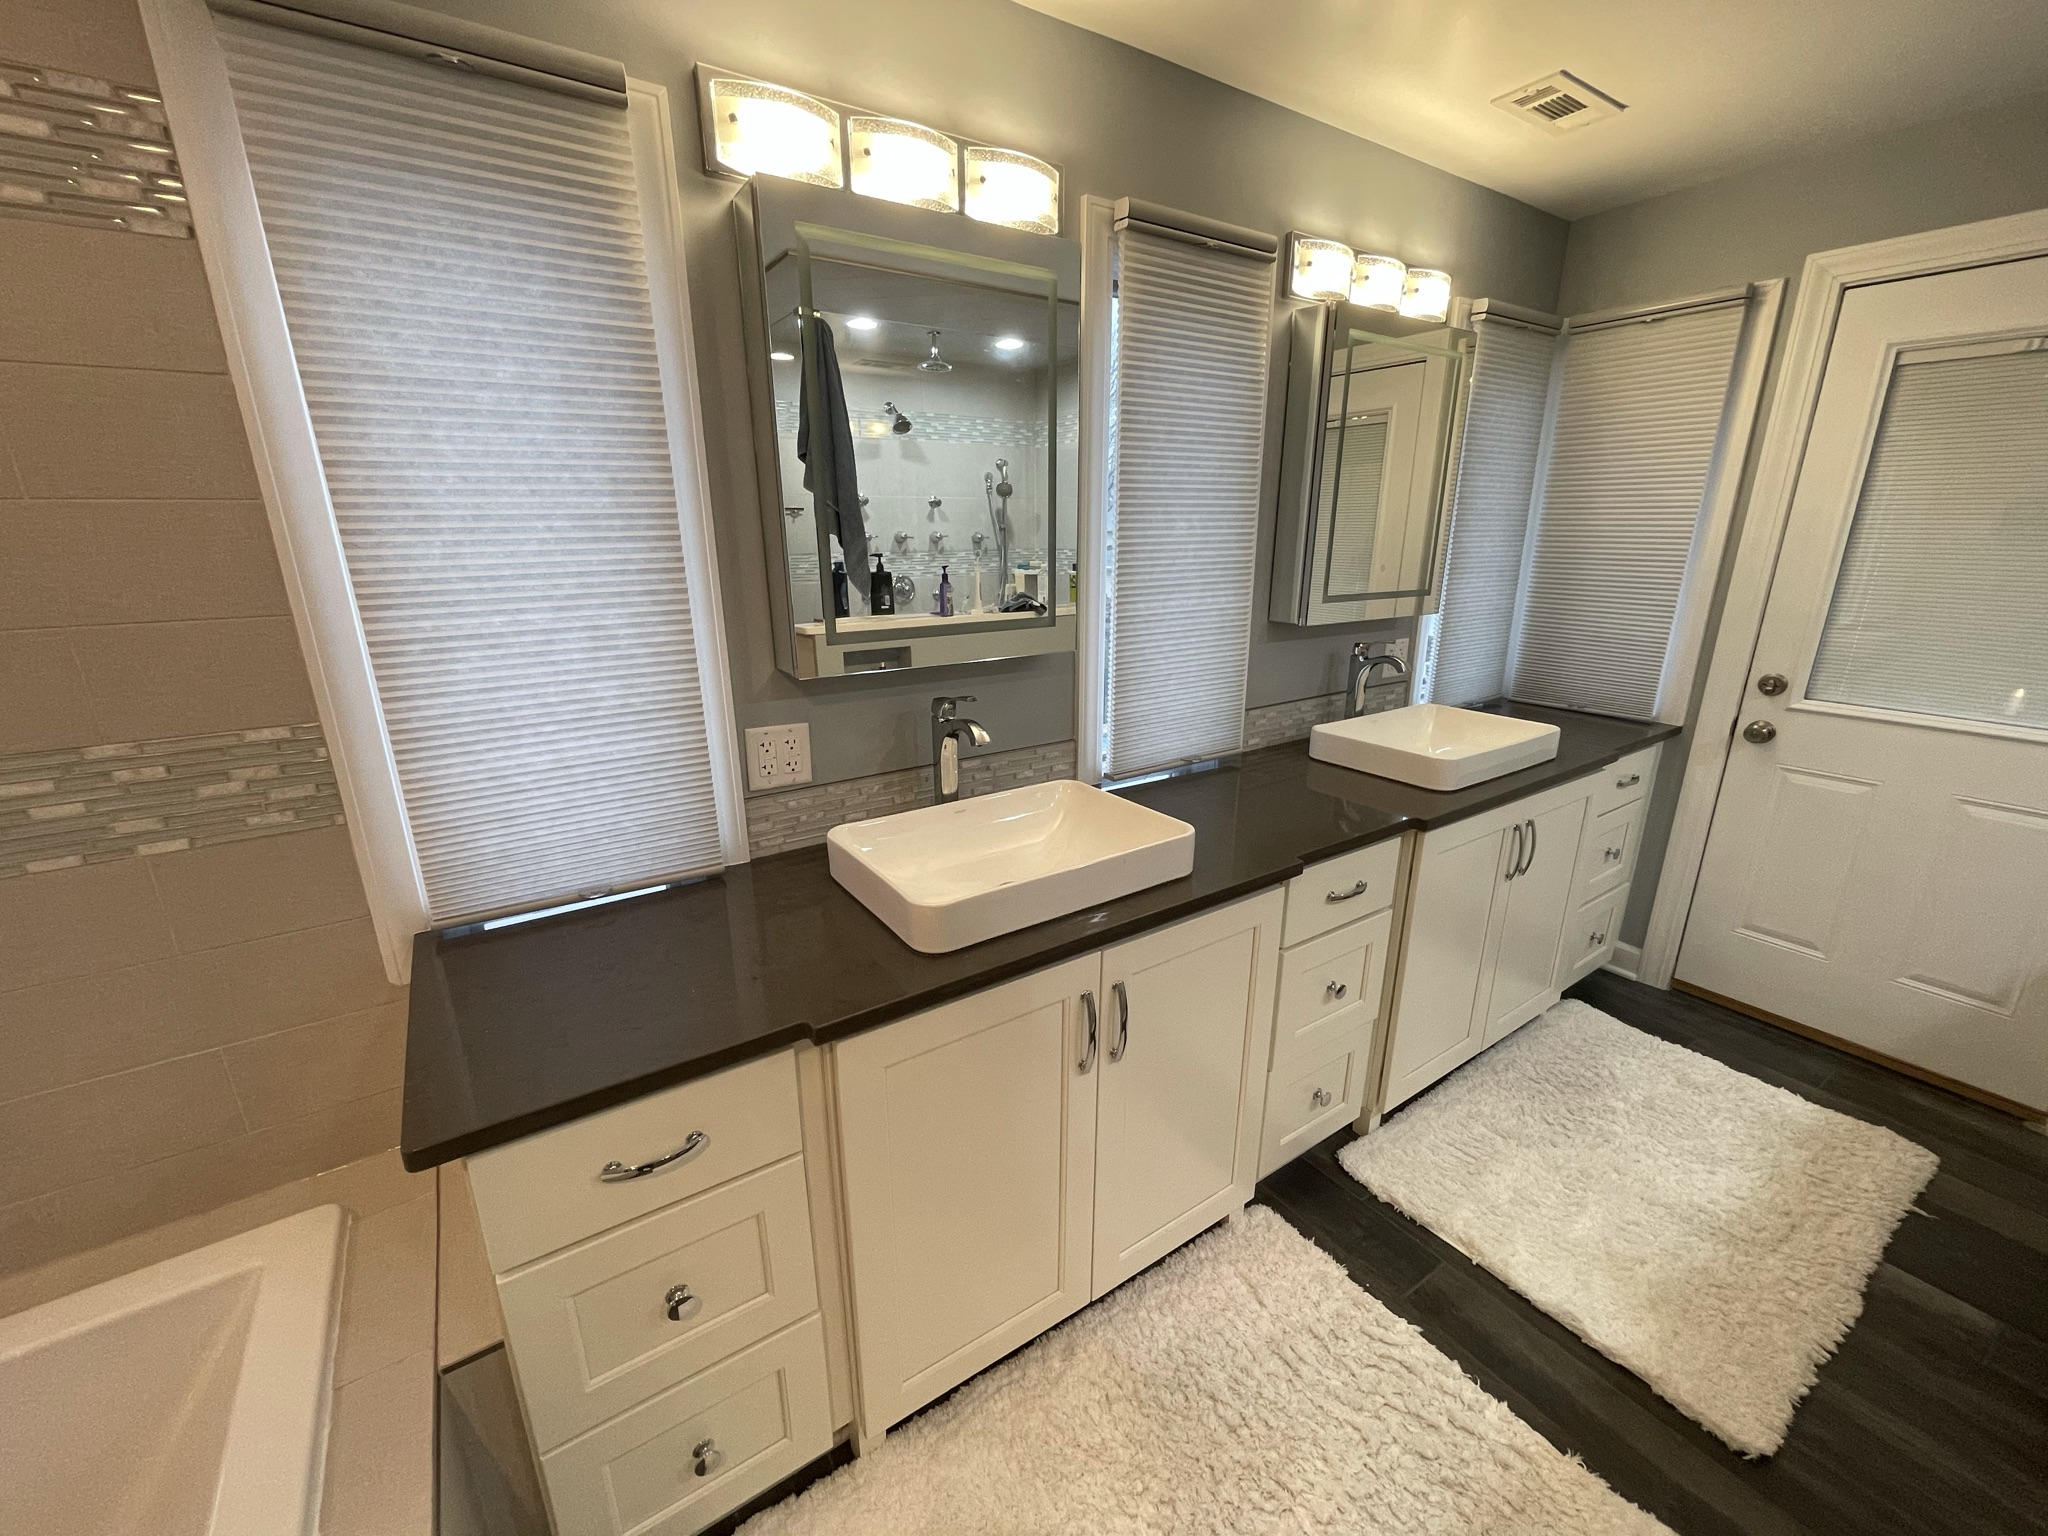 Custom vanity with black countertop, white double sinks and white cabinets